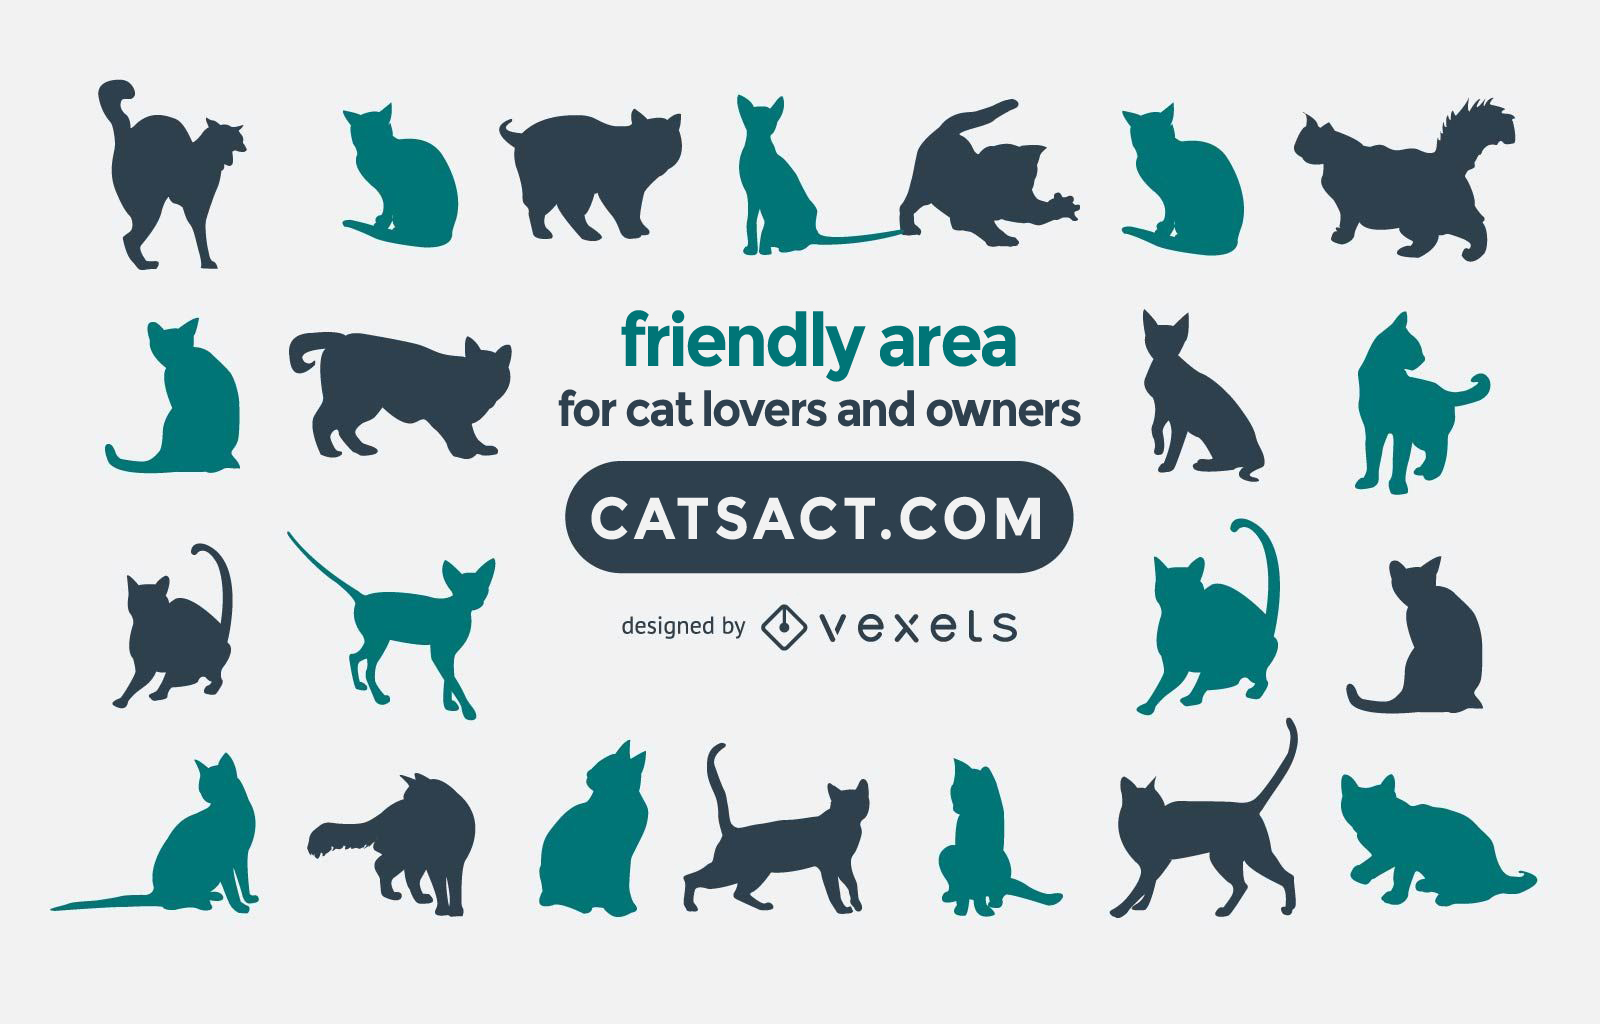 About catsact.com